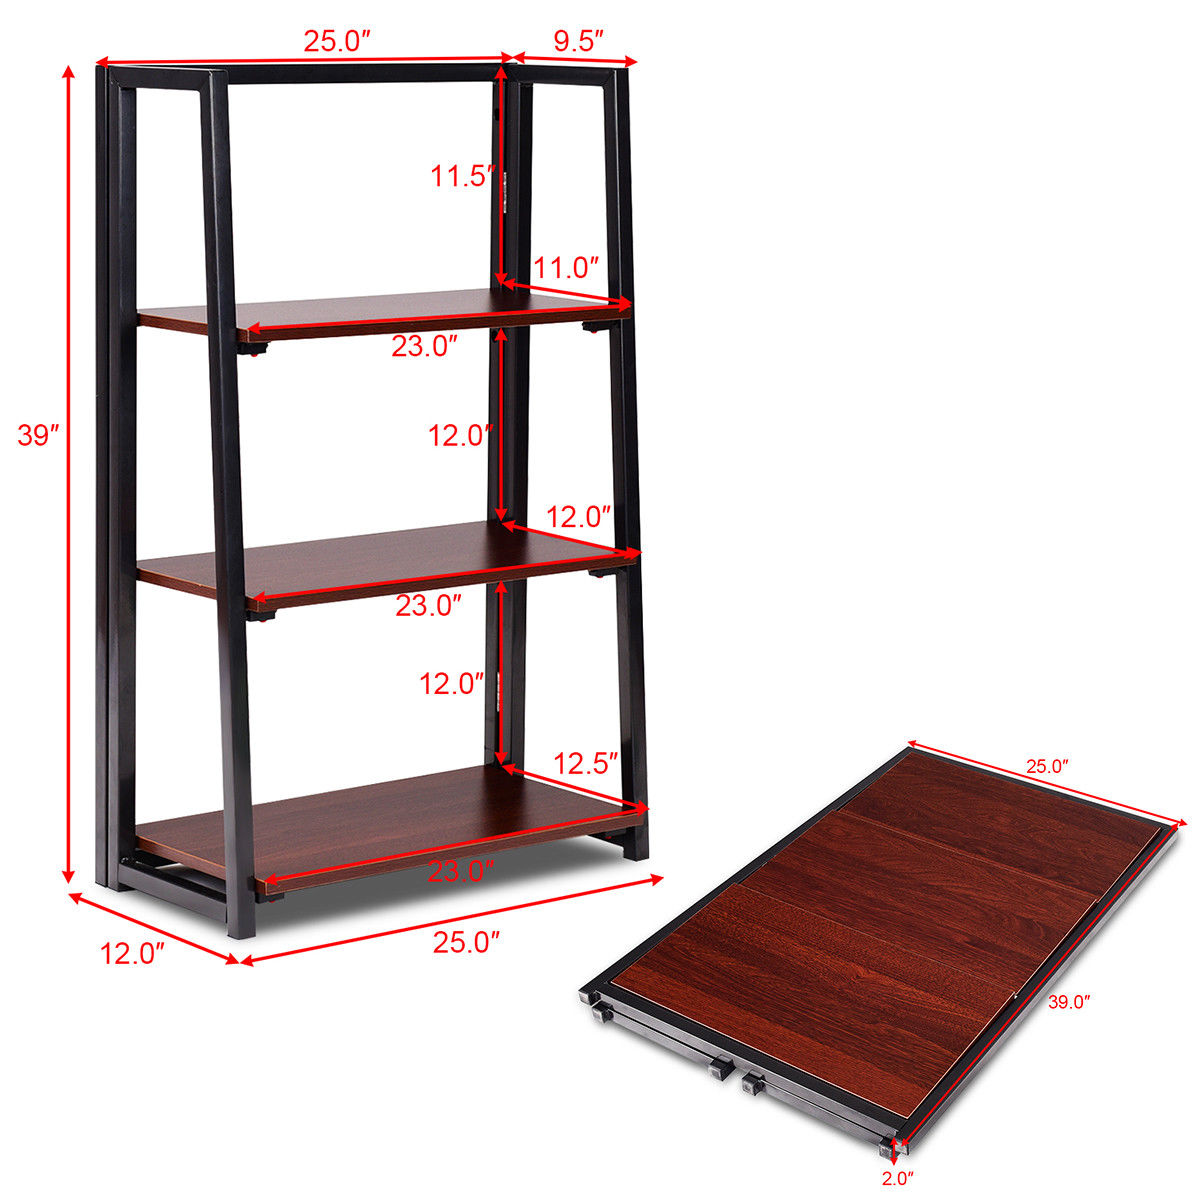 Gymax 3 Tier Folding Ladder Bookcase Multifunctional Plant Flower Display Stand Shelf - image 1 of 10